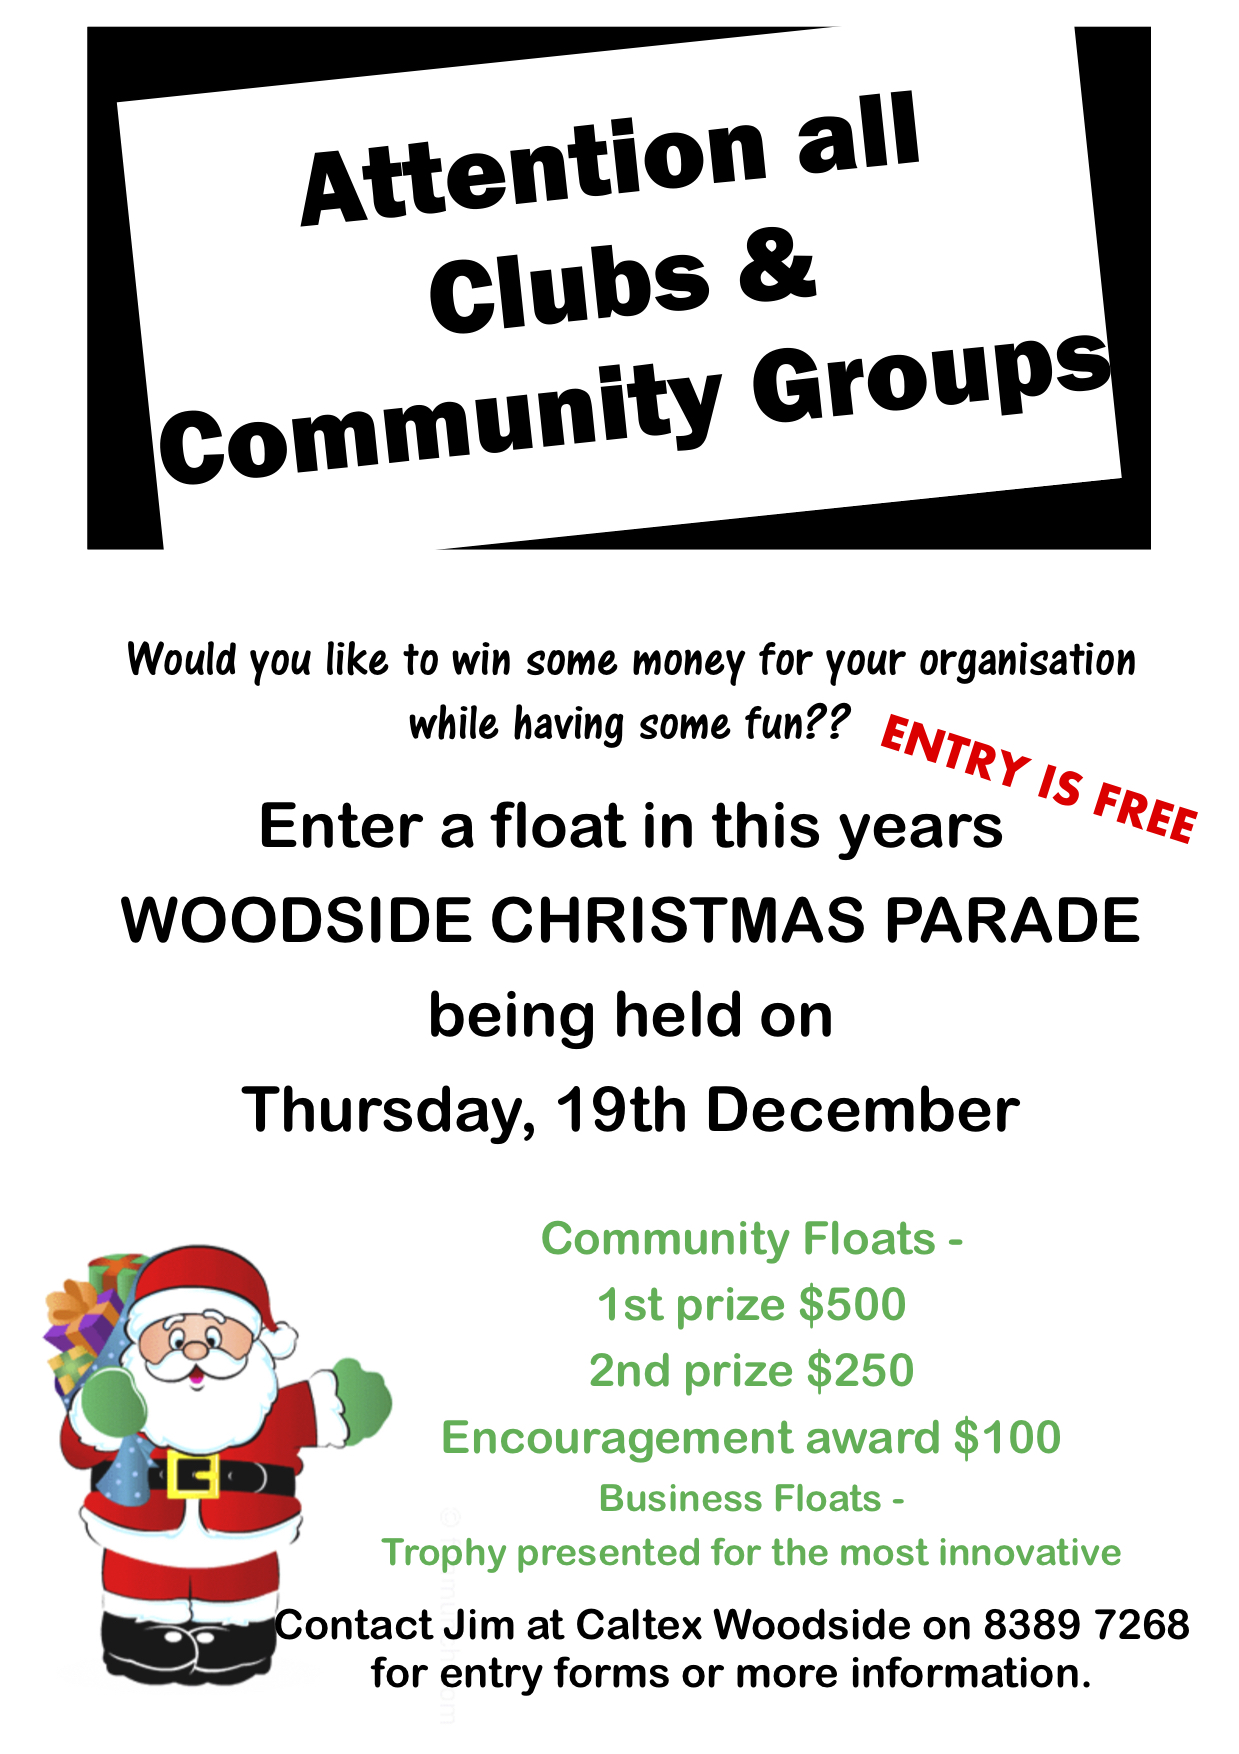 Woodside Christmas Pageant community flyer